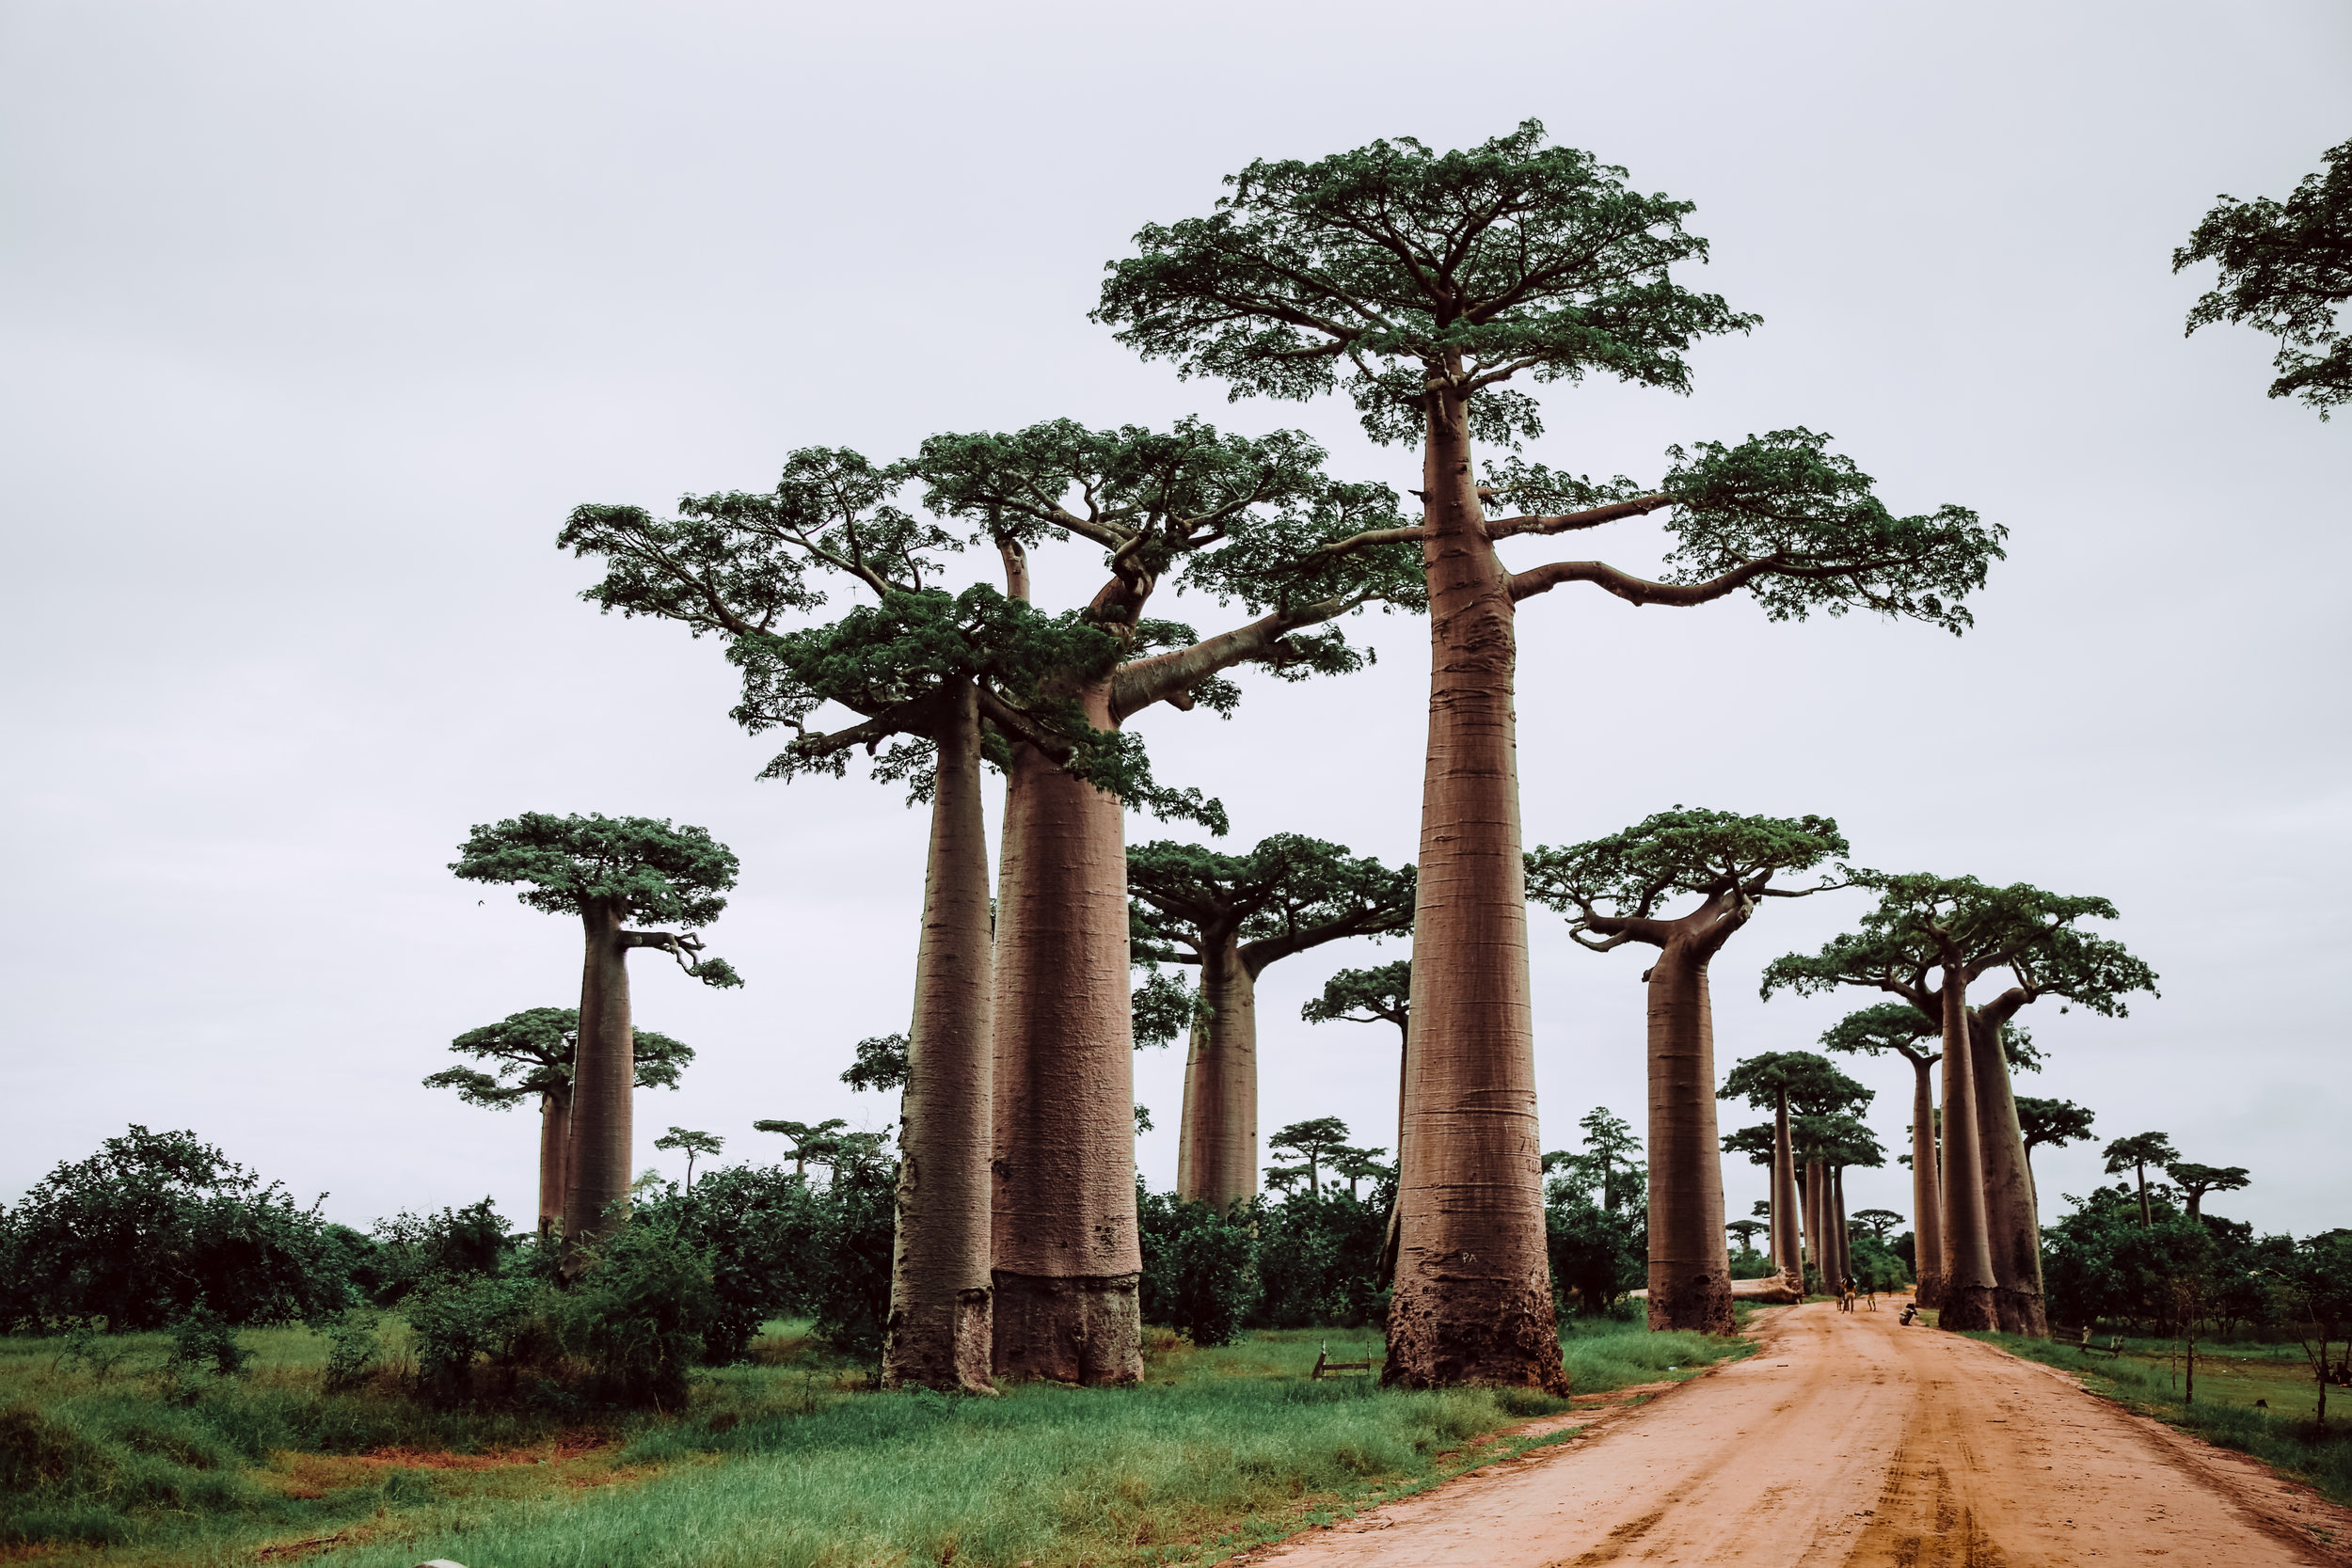 Baobab trees grow in Africa, Australia and any arid region. They can live for over 2,000 years. They are truly giants - their trunks are so big, a pub has been built in a hollow trunk measuring 150ft.